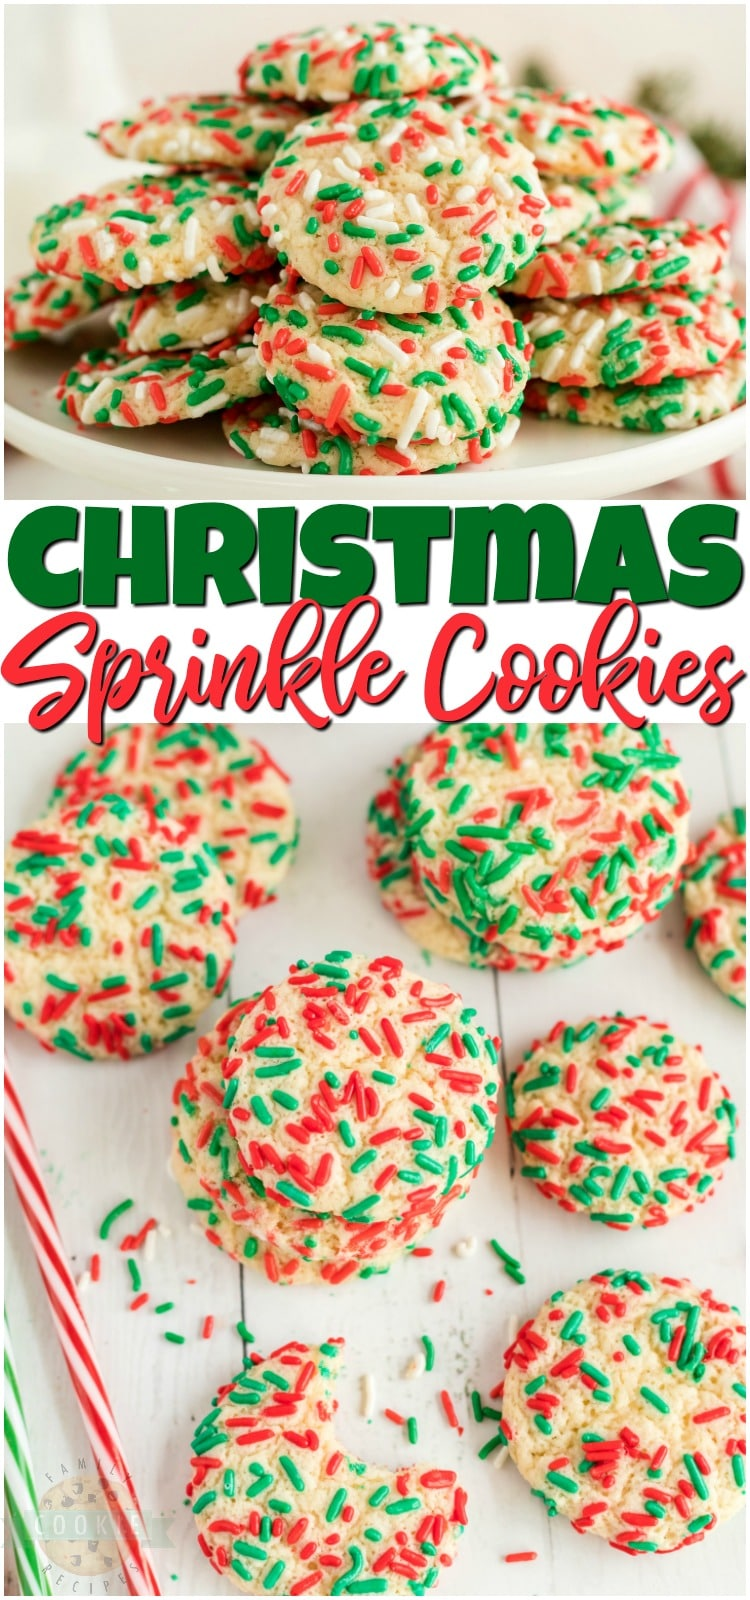 Christmas Sprinkle Cookies are sugar Cookies rolled in Christmas sprinkles for a special holiday treat! Delightfully soft & chewy Christmas cookies made with festive holiday sprinkles! #Christmas #sugarcookies #sprinkles #cookies #baking #holidays #neighborgifts #ChristmasCookies from FAMILY COOKIE RECIPES